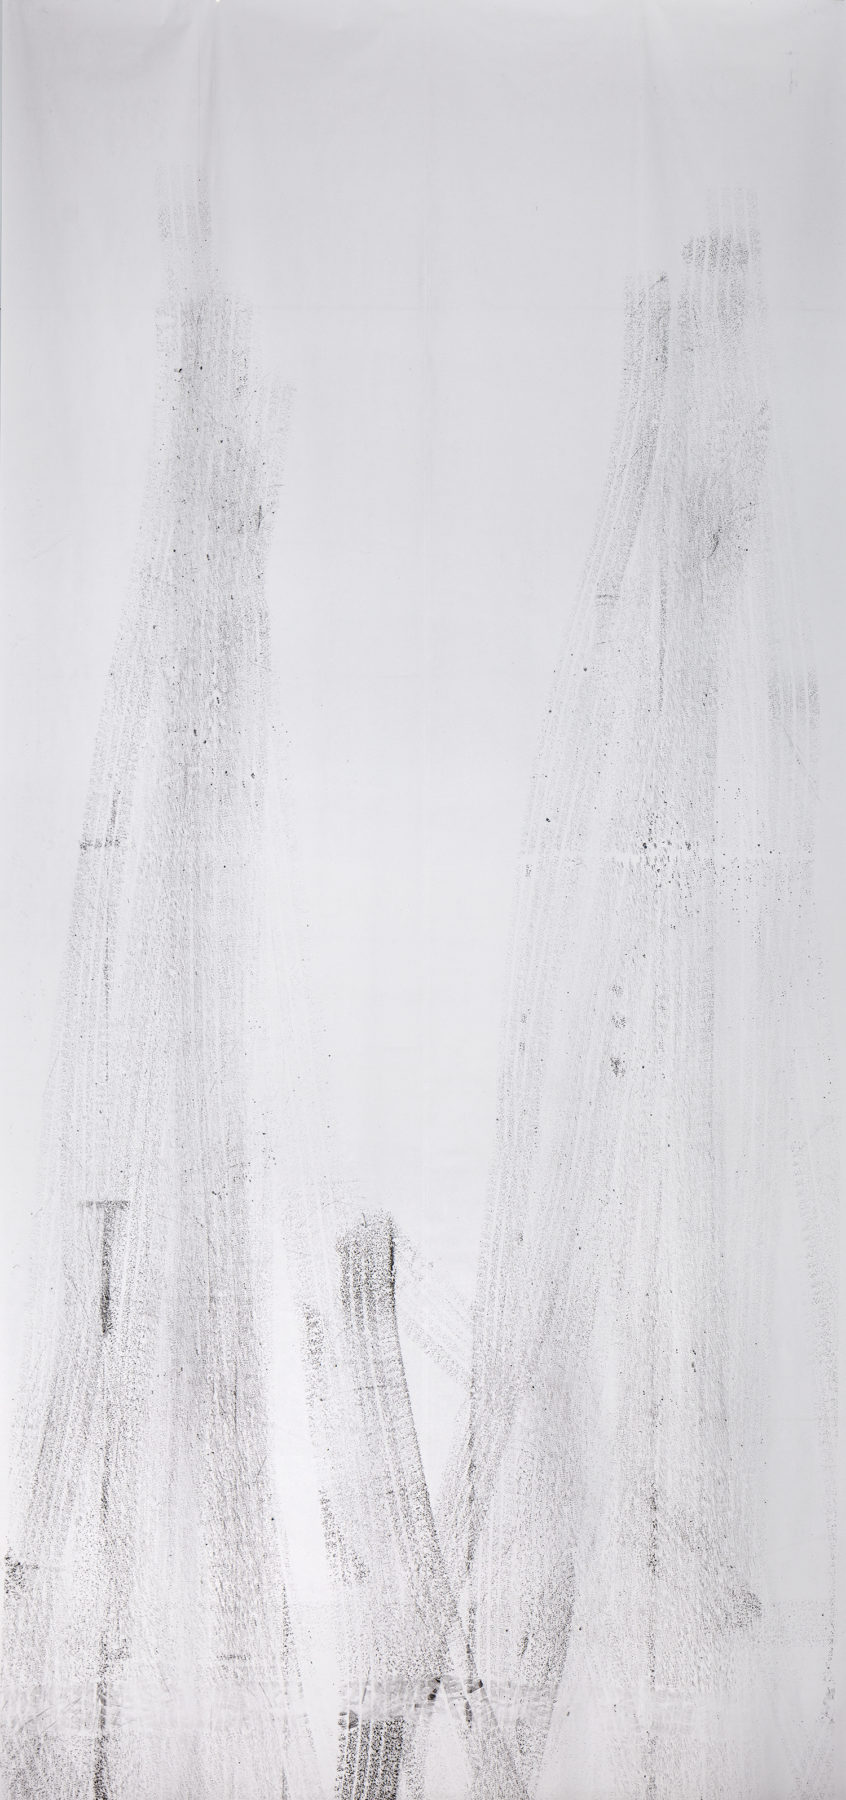 tyreprint, carbon on paper, 600 x 280 cm, 2019